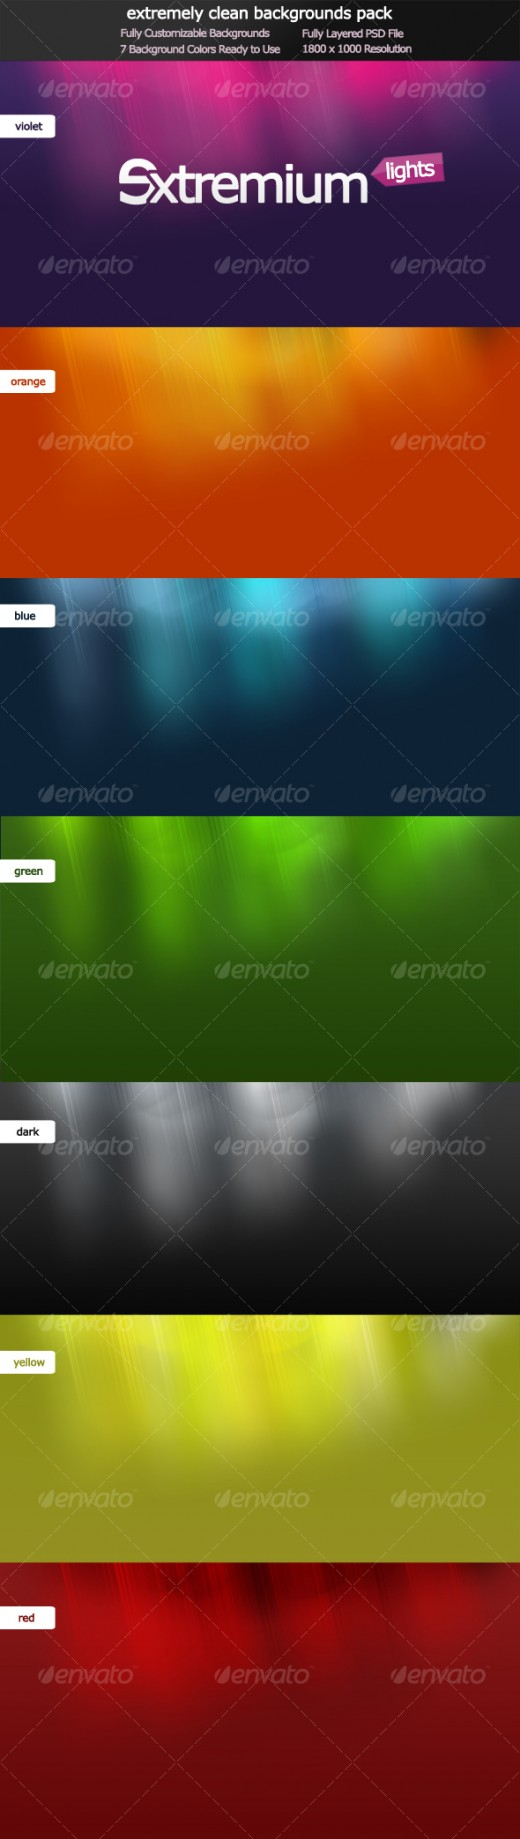 Colors for professional website - 2 Extremium Lights Extremely Clean Background Pack